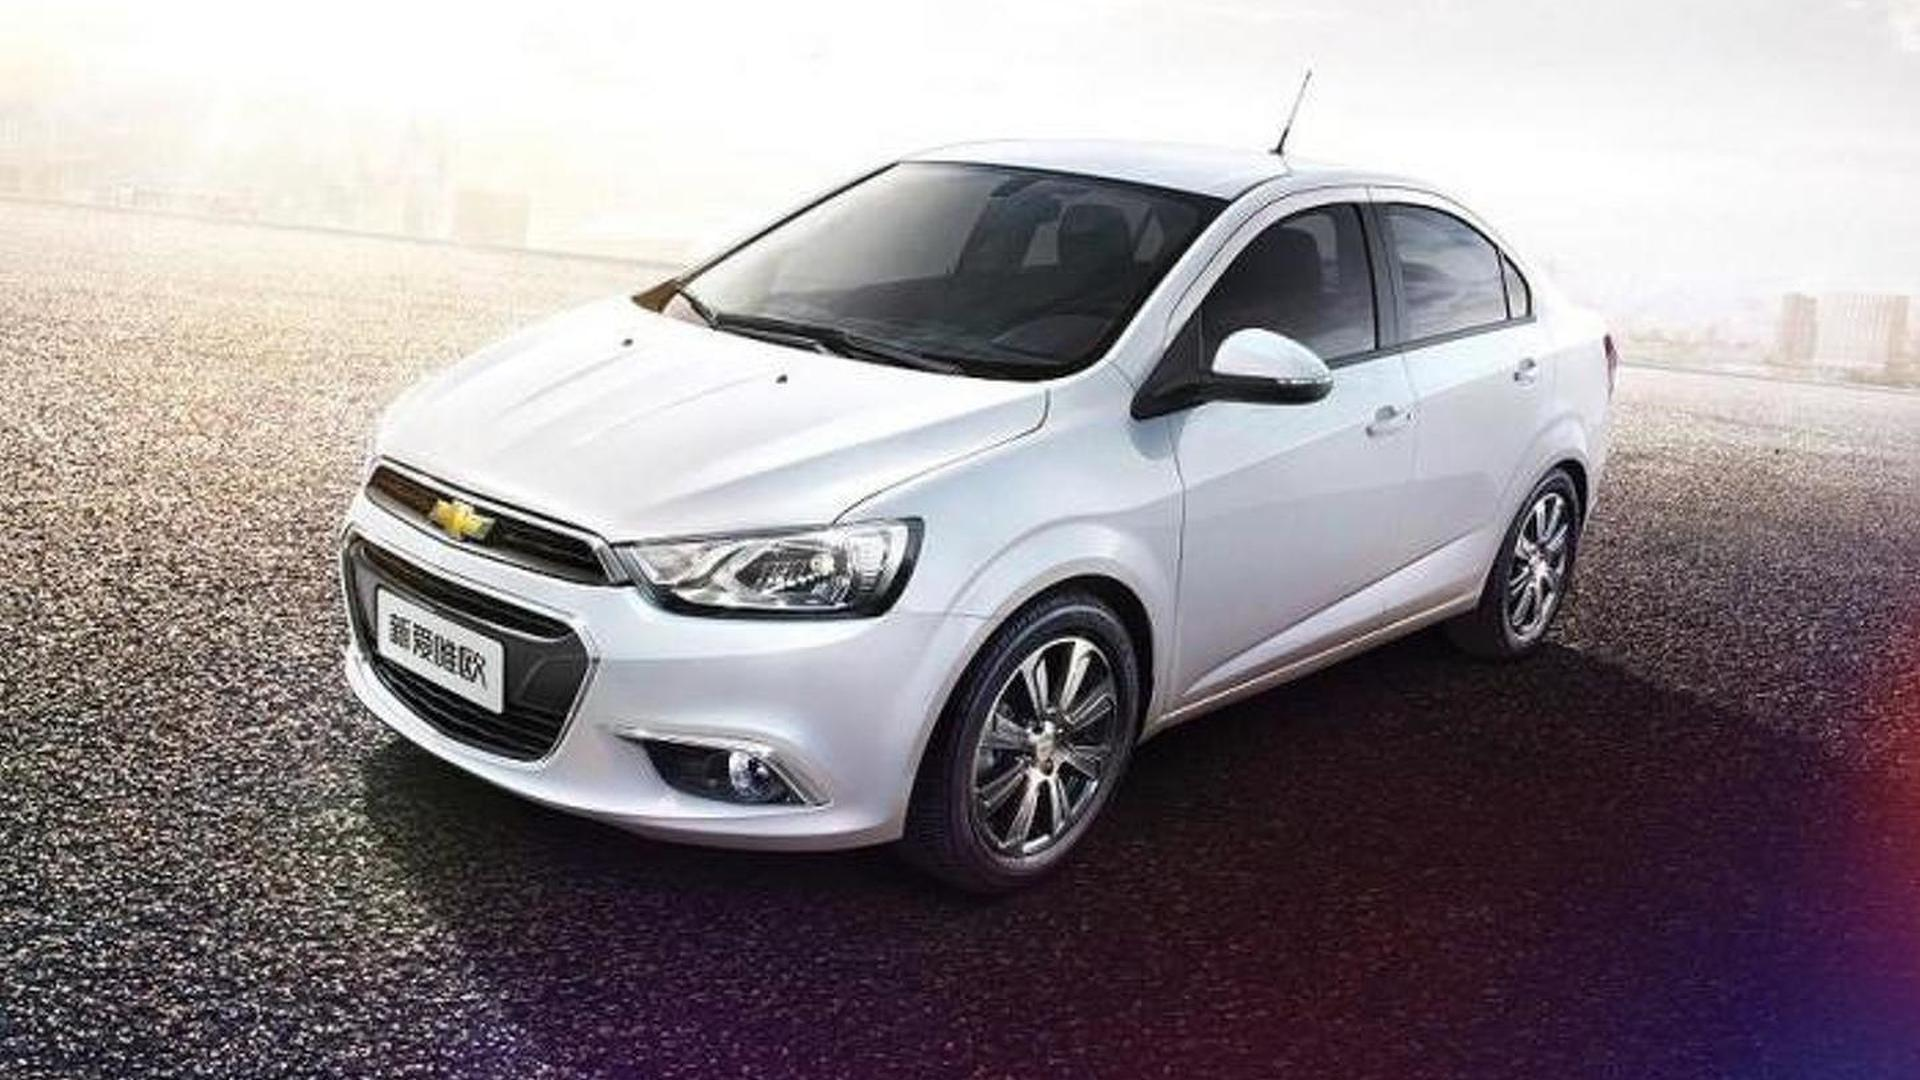 Chevrolet reveals facelifted Aveo in China